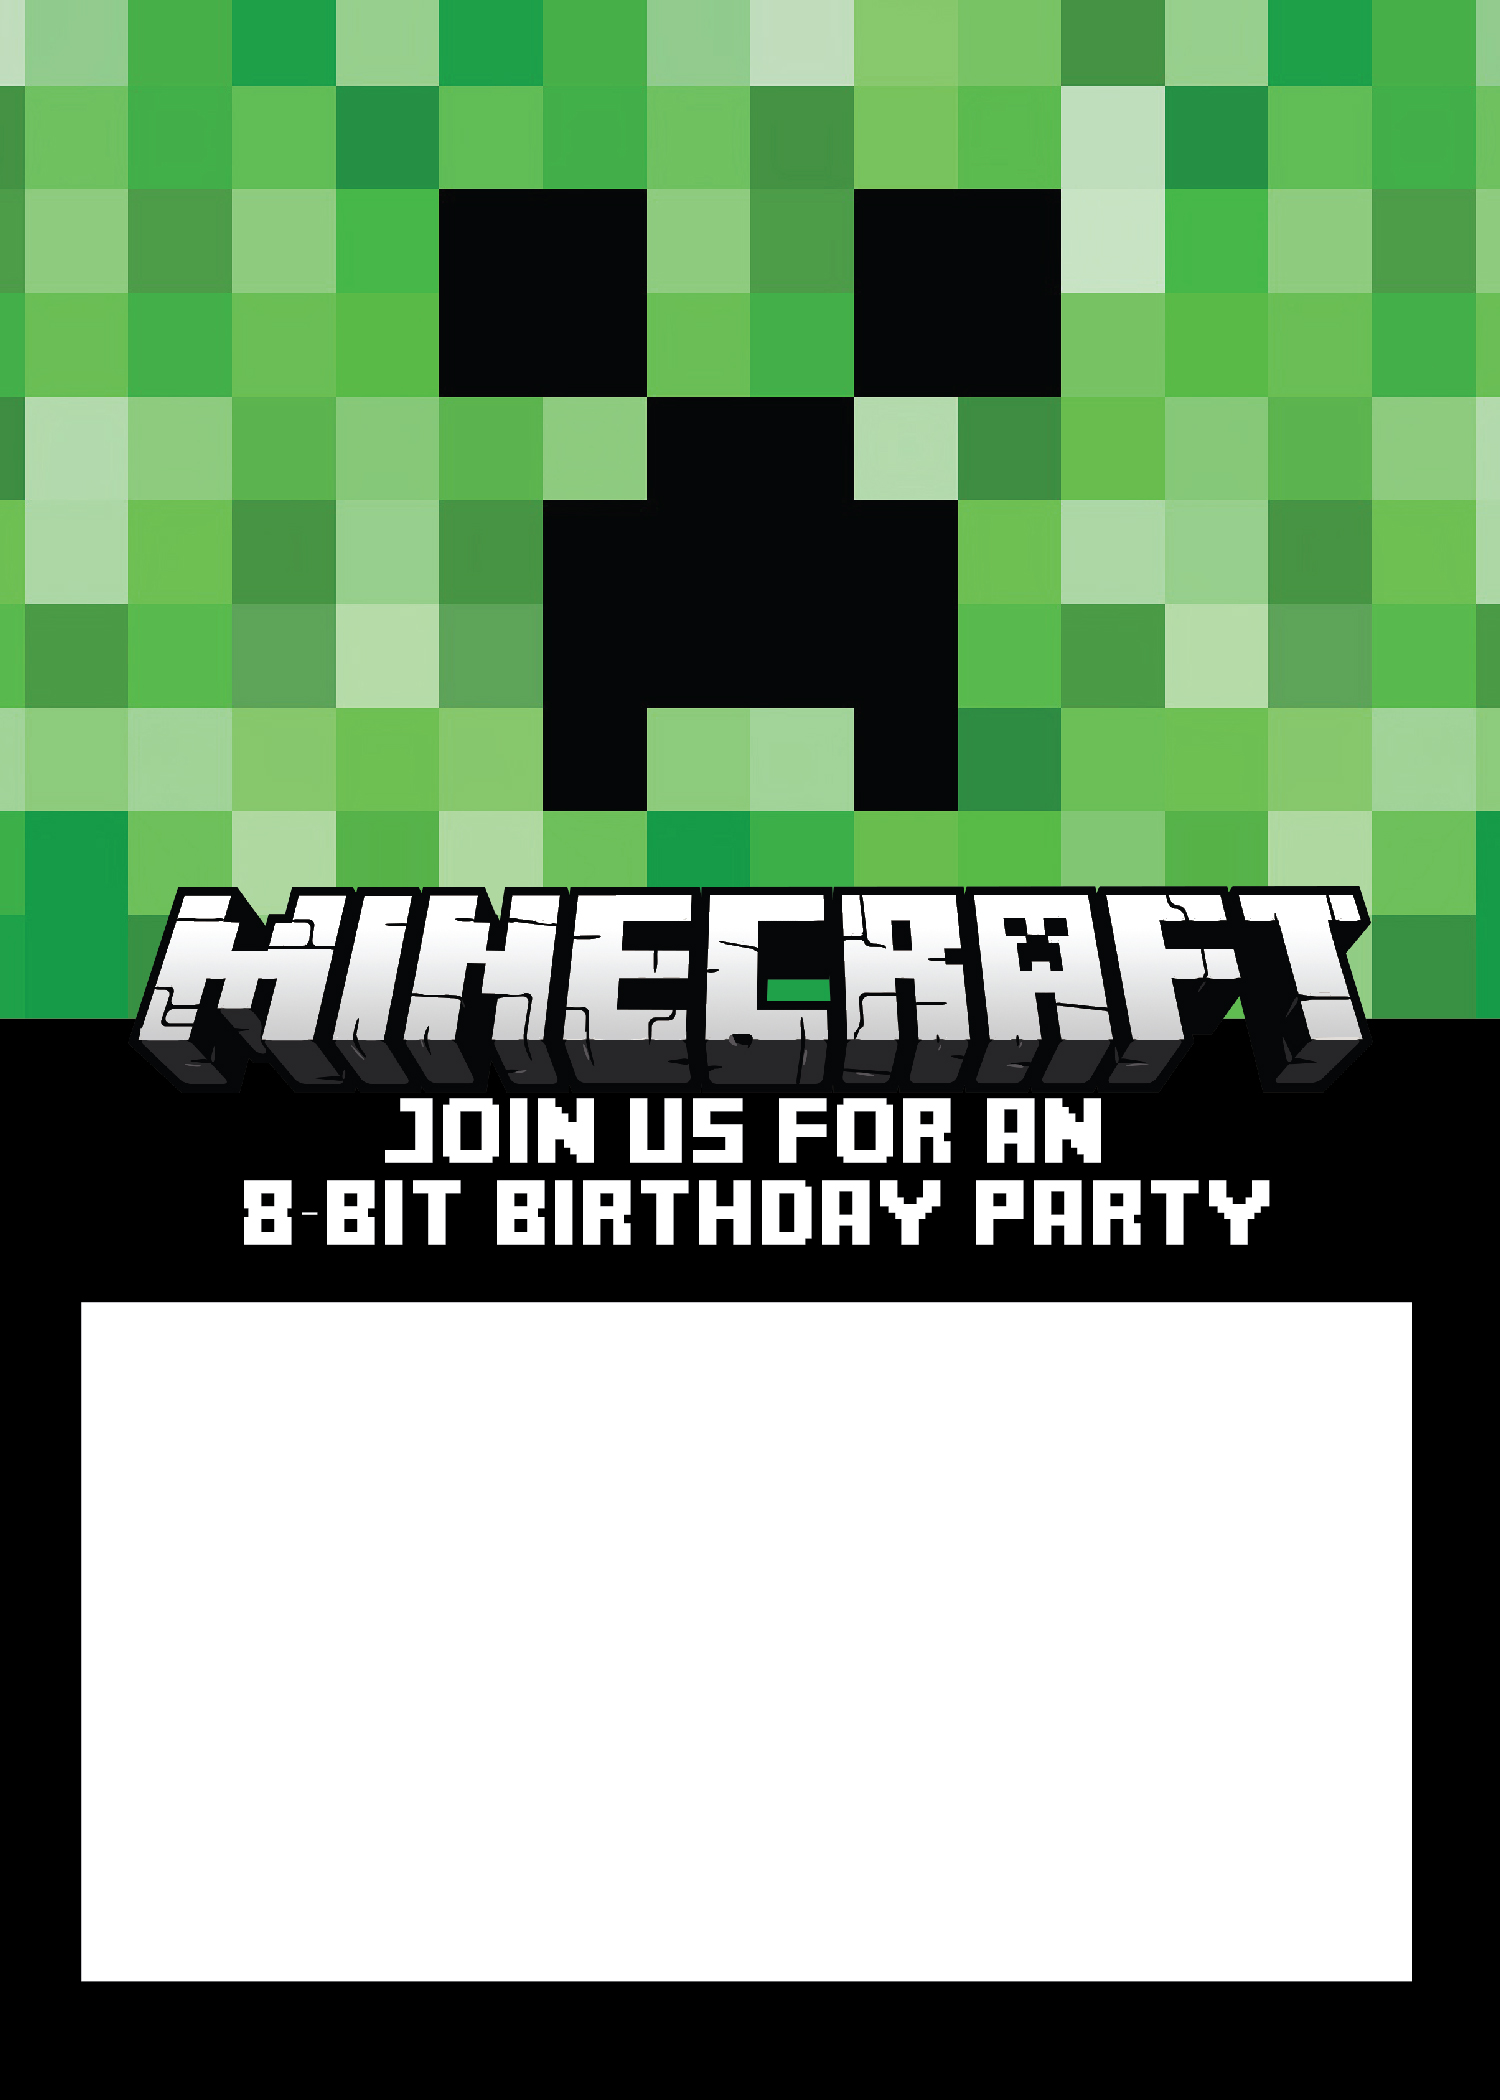 Blank Birthday Invitation Template Minecraft Free - Blank birthday invitation card templates